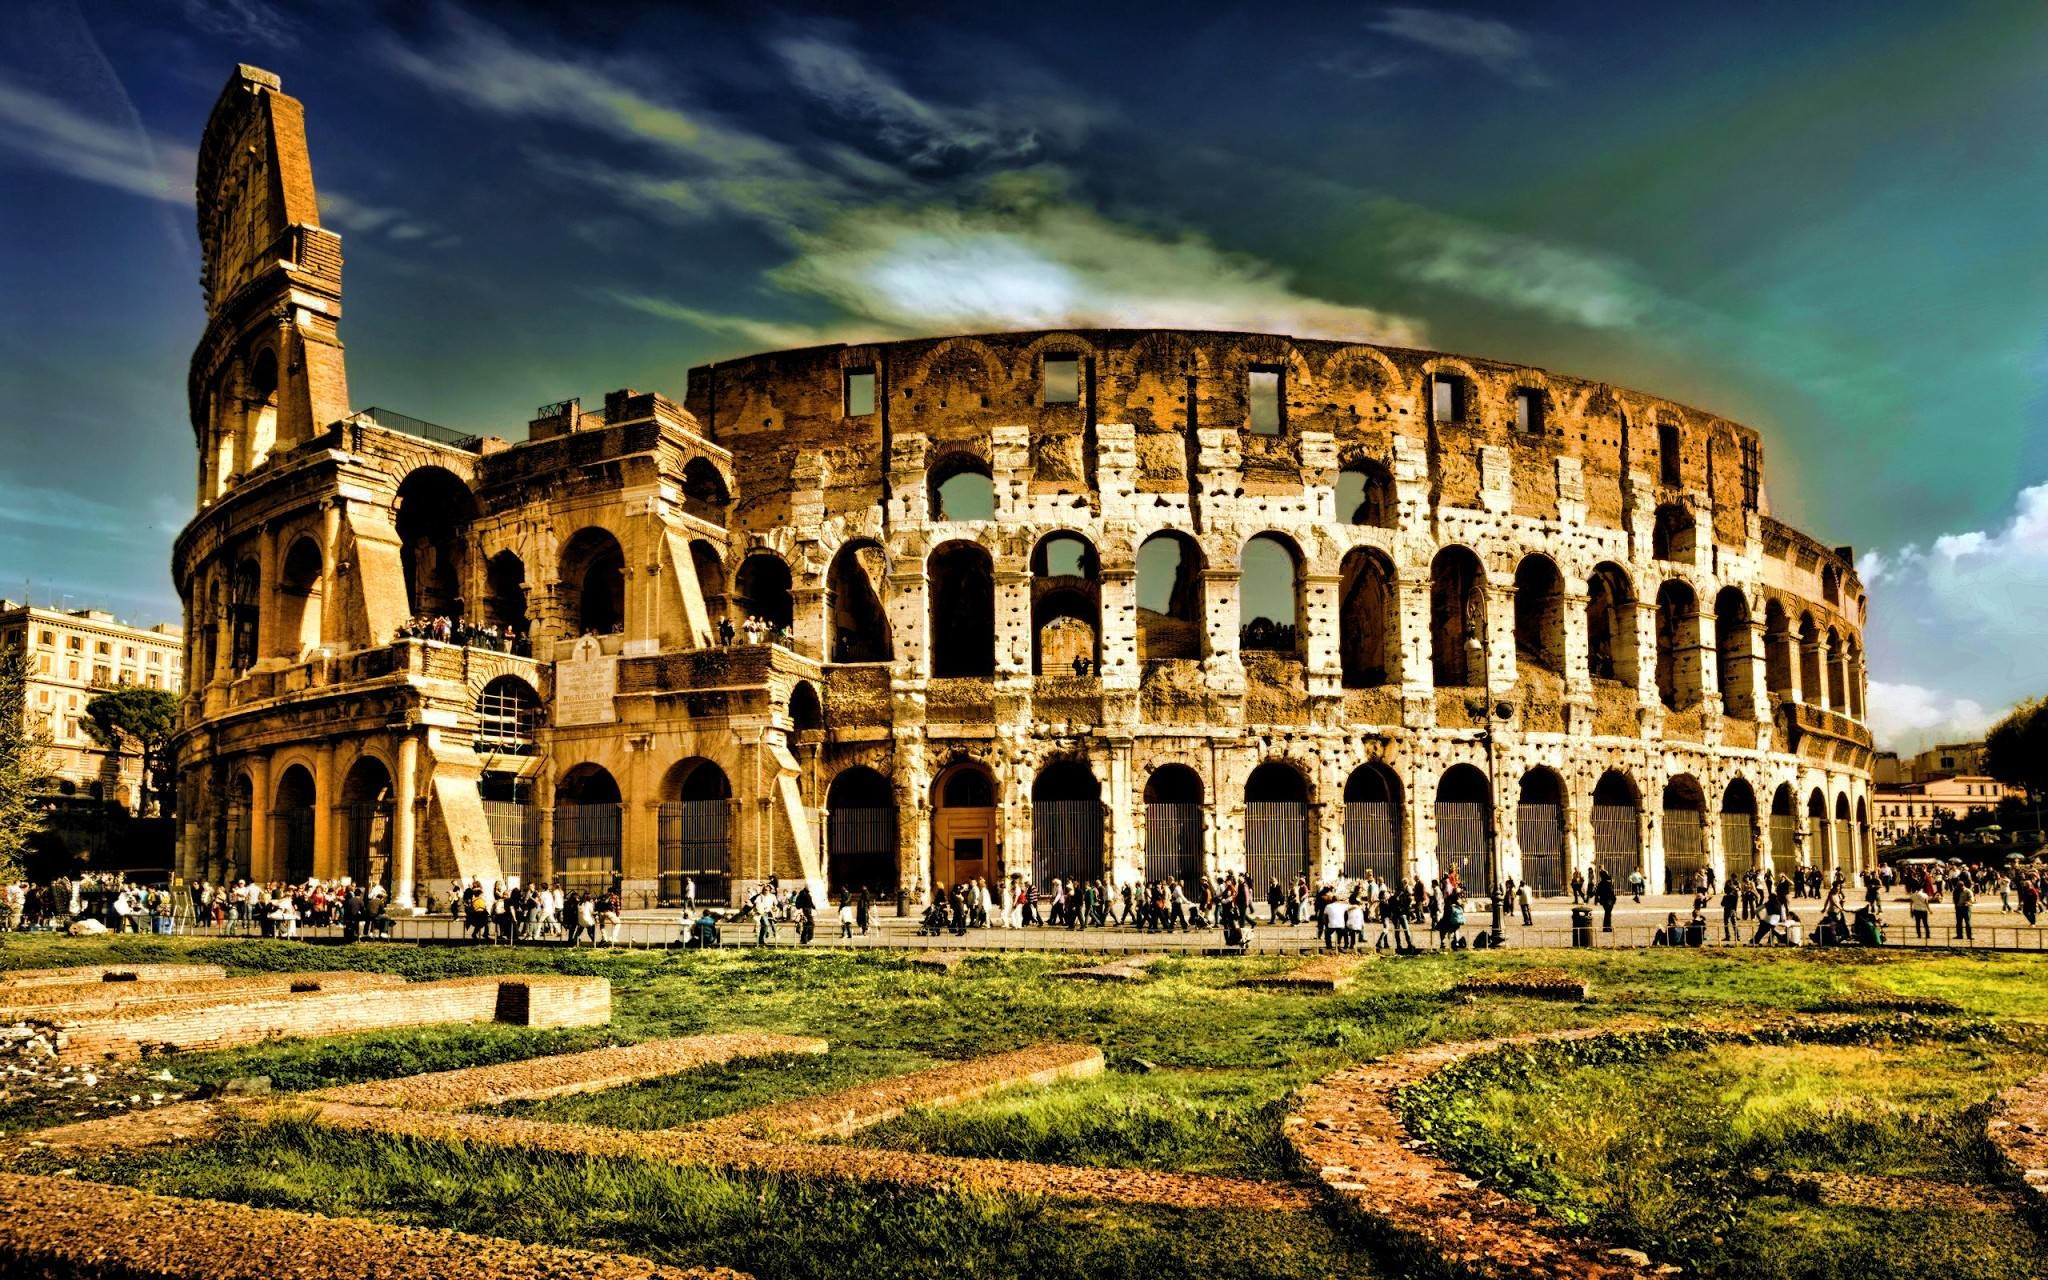 2048x1280 Amazing Roma City Wallpaper HD #9688 Wallpaper | Wallpaper Screen .